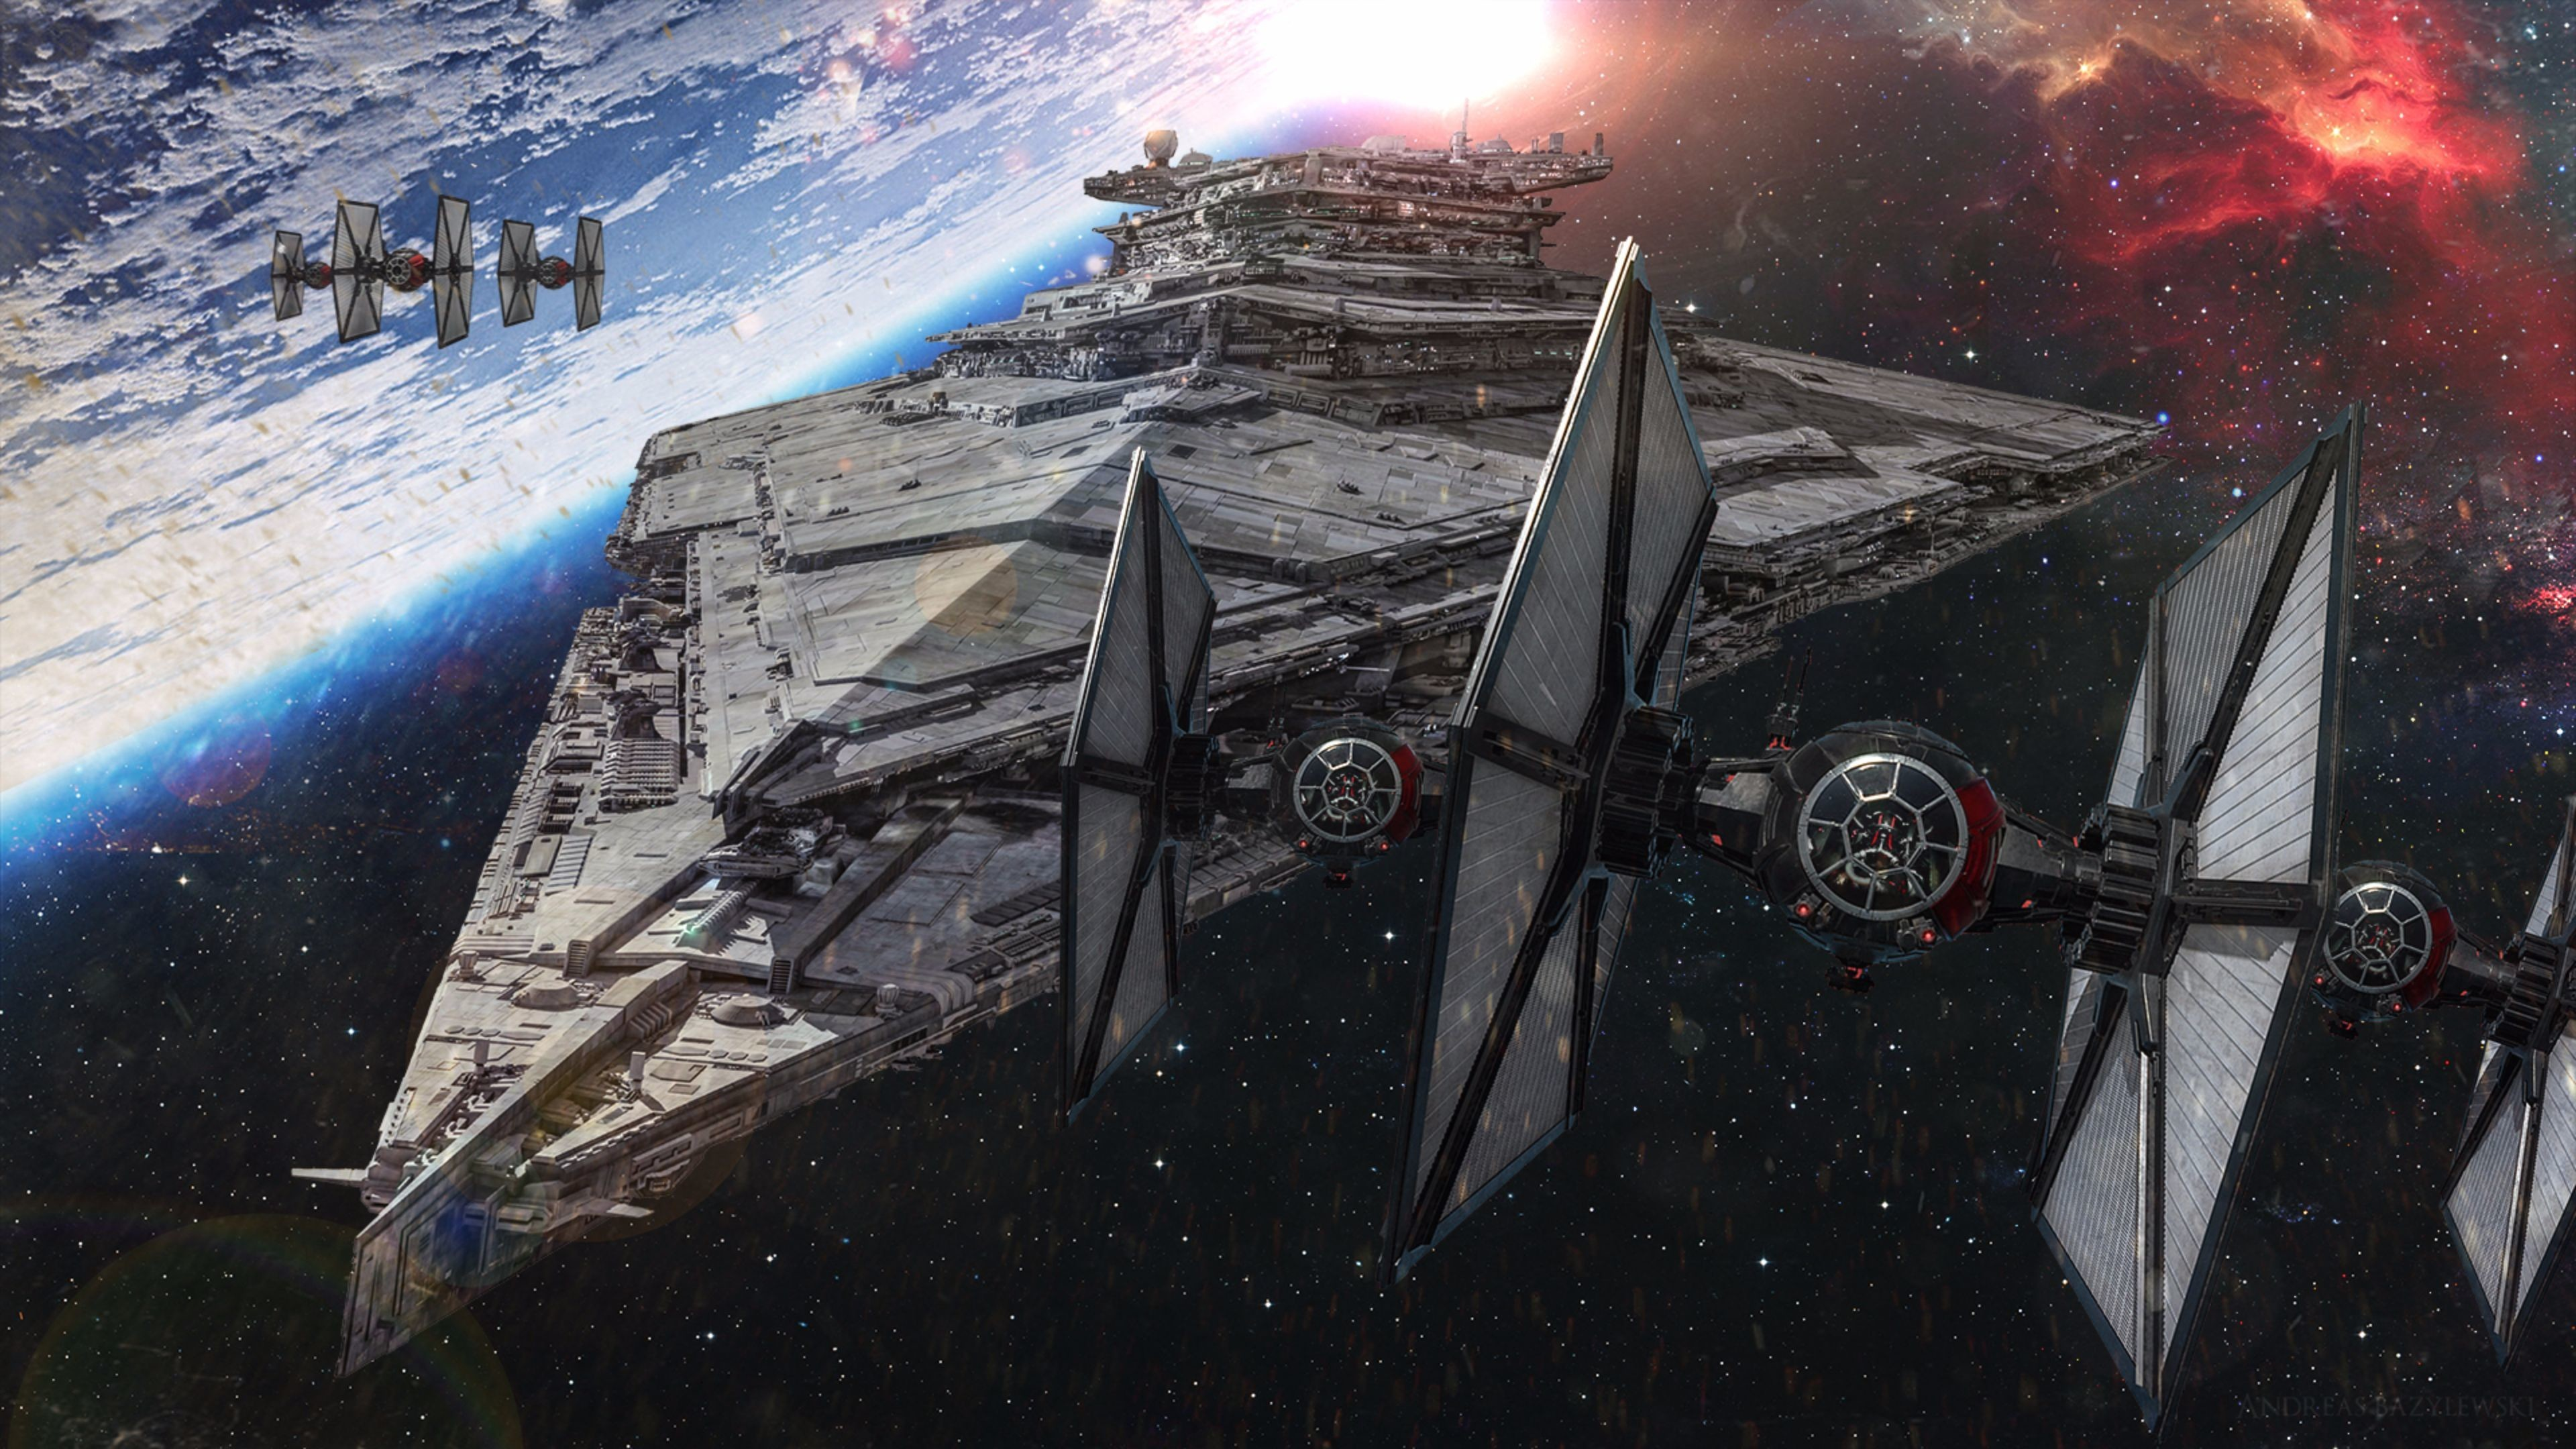 Star Wars Military Desktop Wallpapers Wallpaper Cave